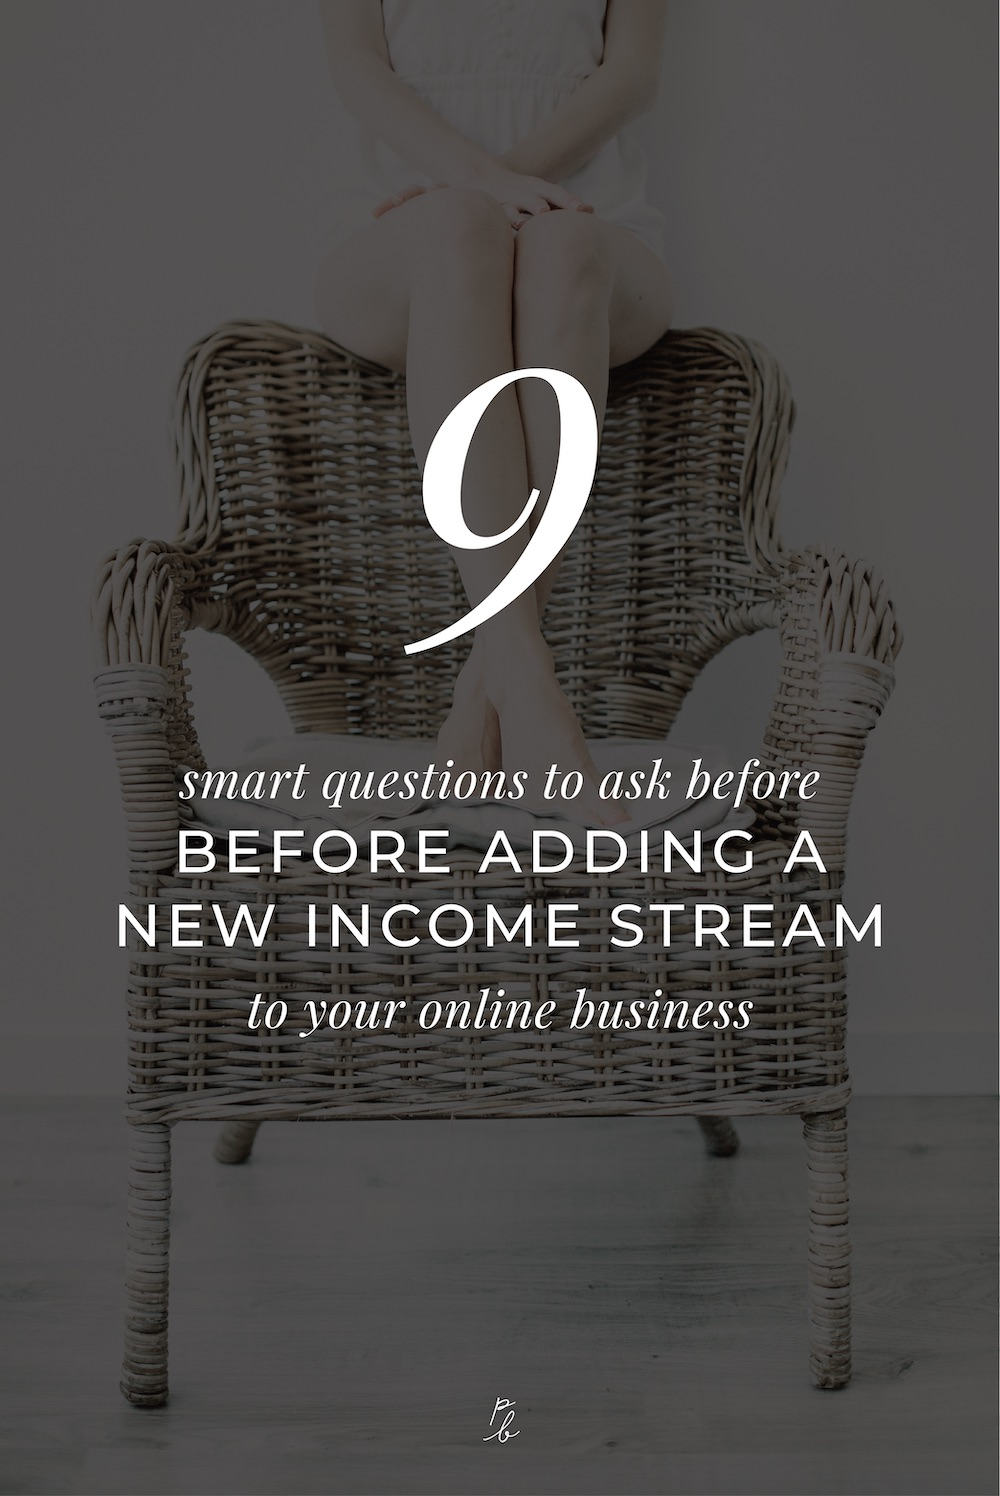 2-9 smart questions to ask before adding a new income stream to your online business.jpg